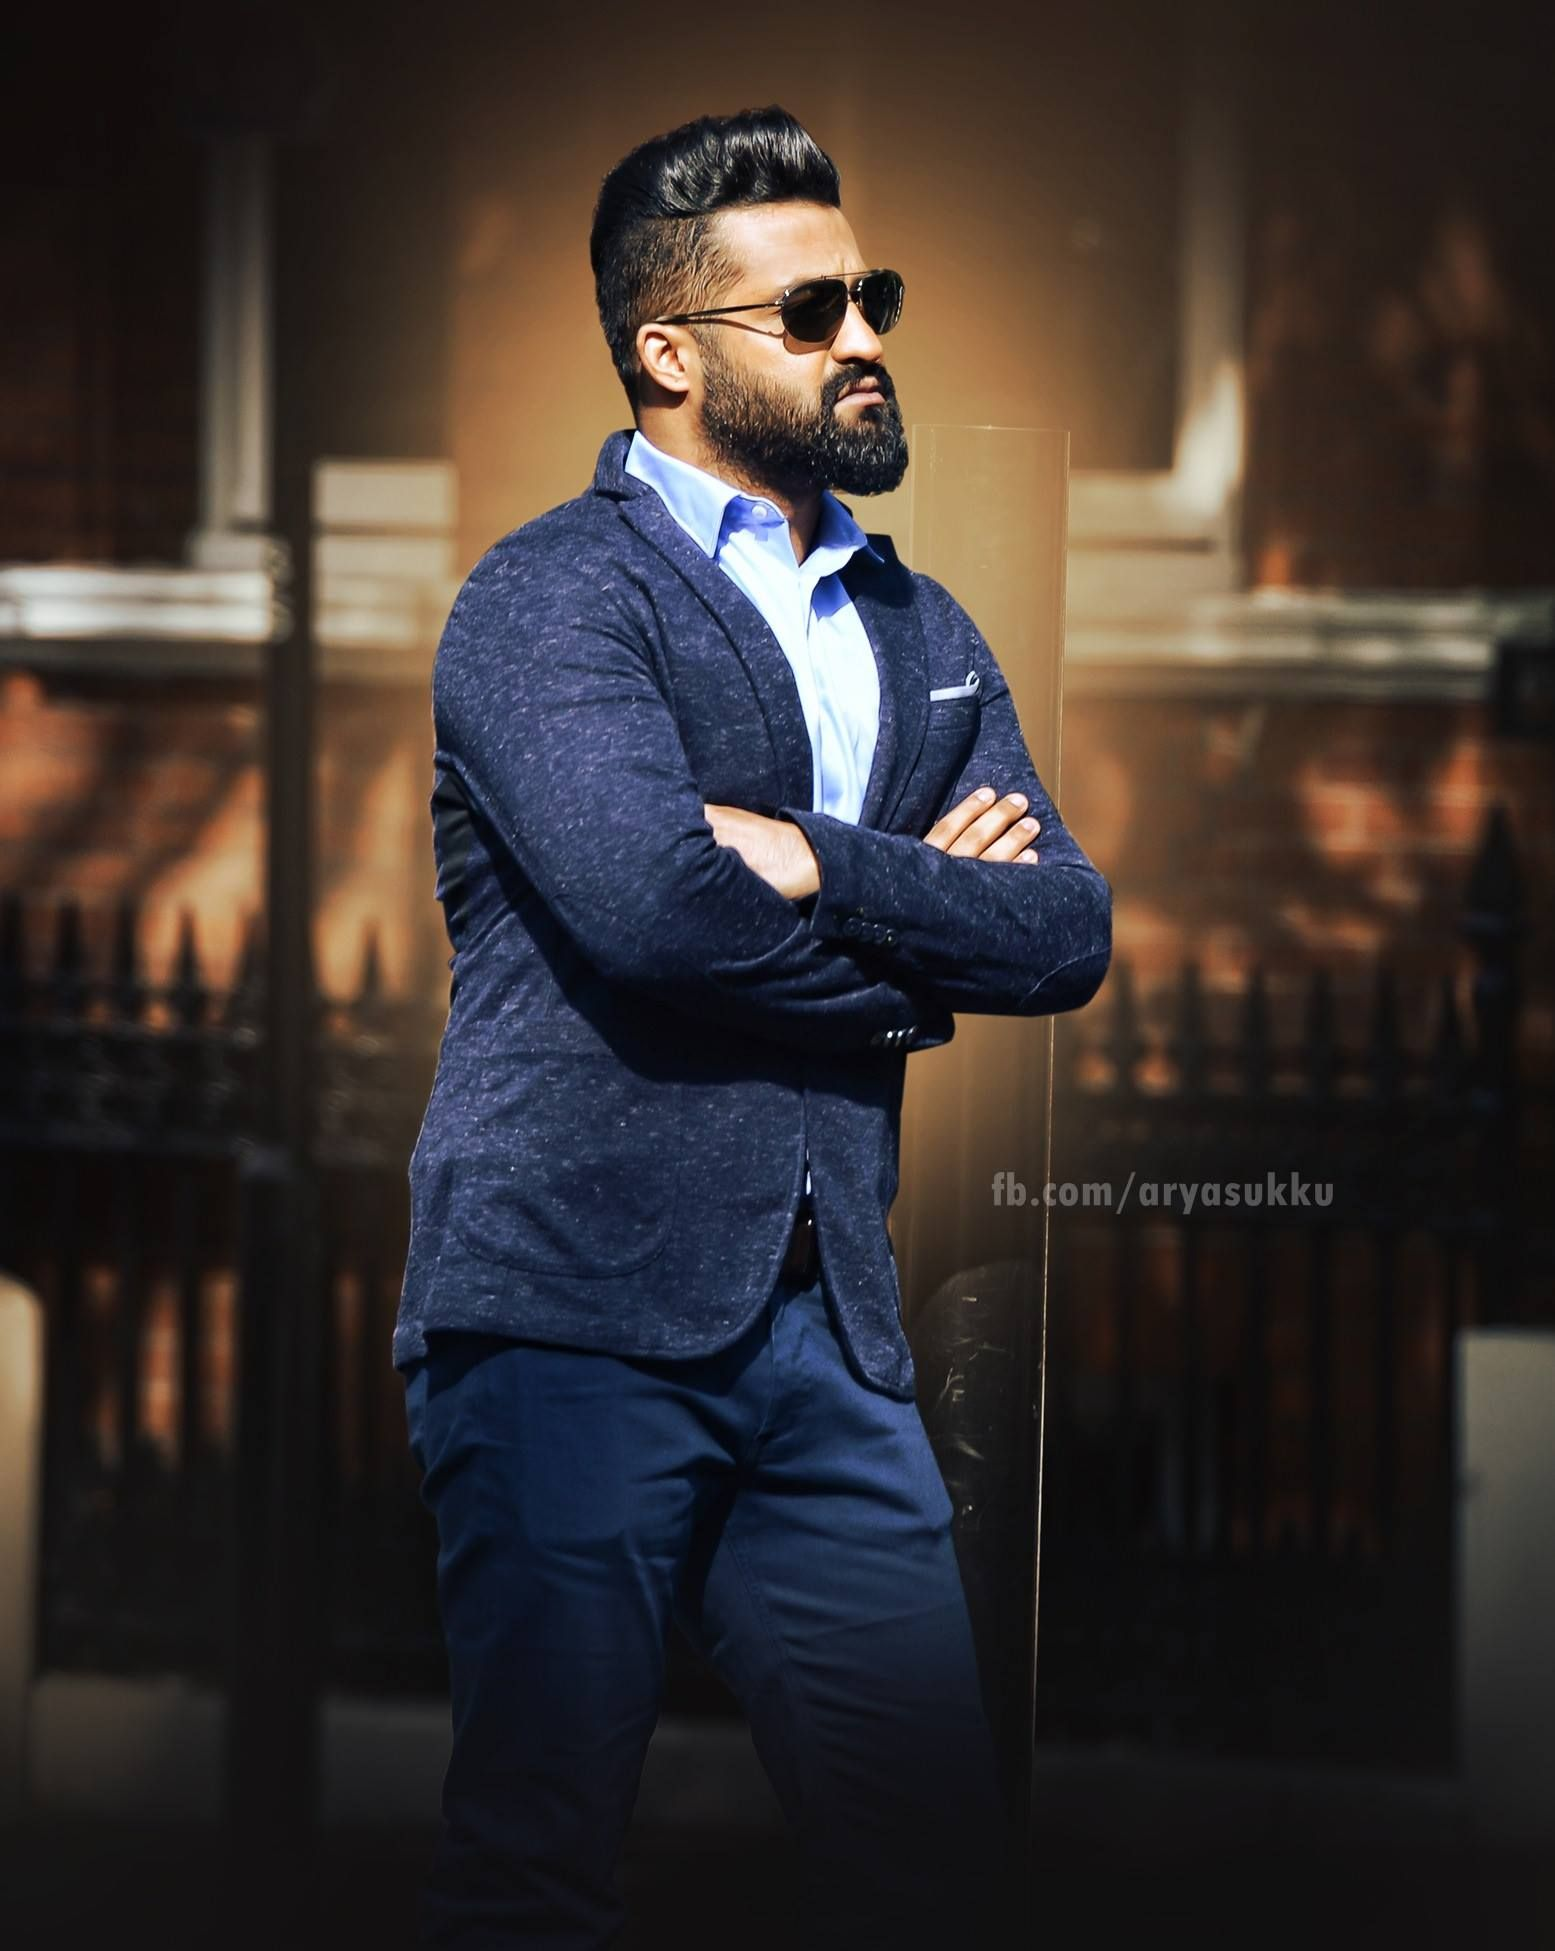 jr ntr hd wallpapers | madrid | pinterest | hd wallpaper, wallpaper